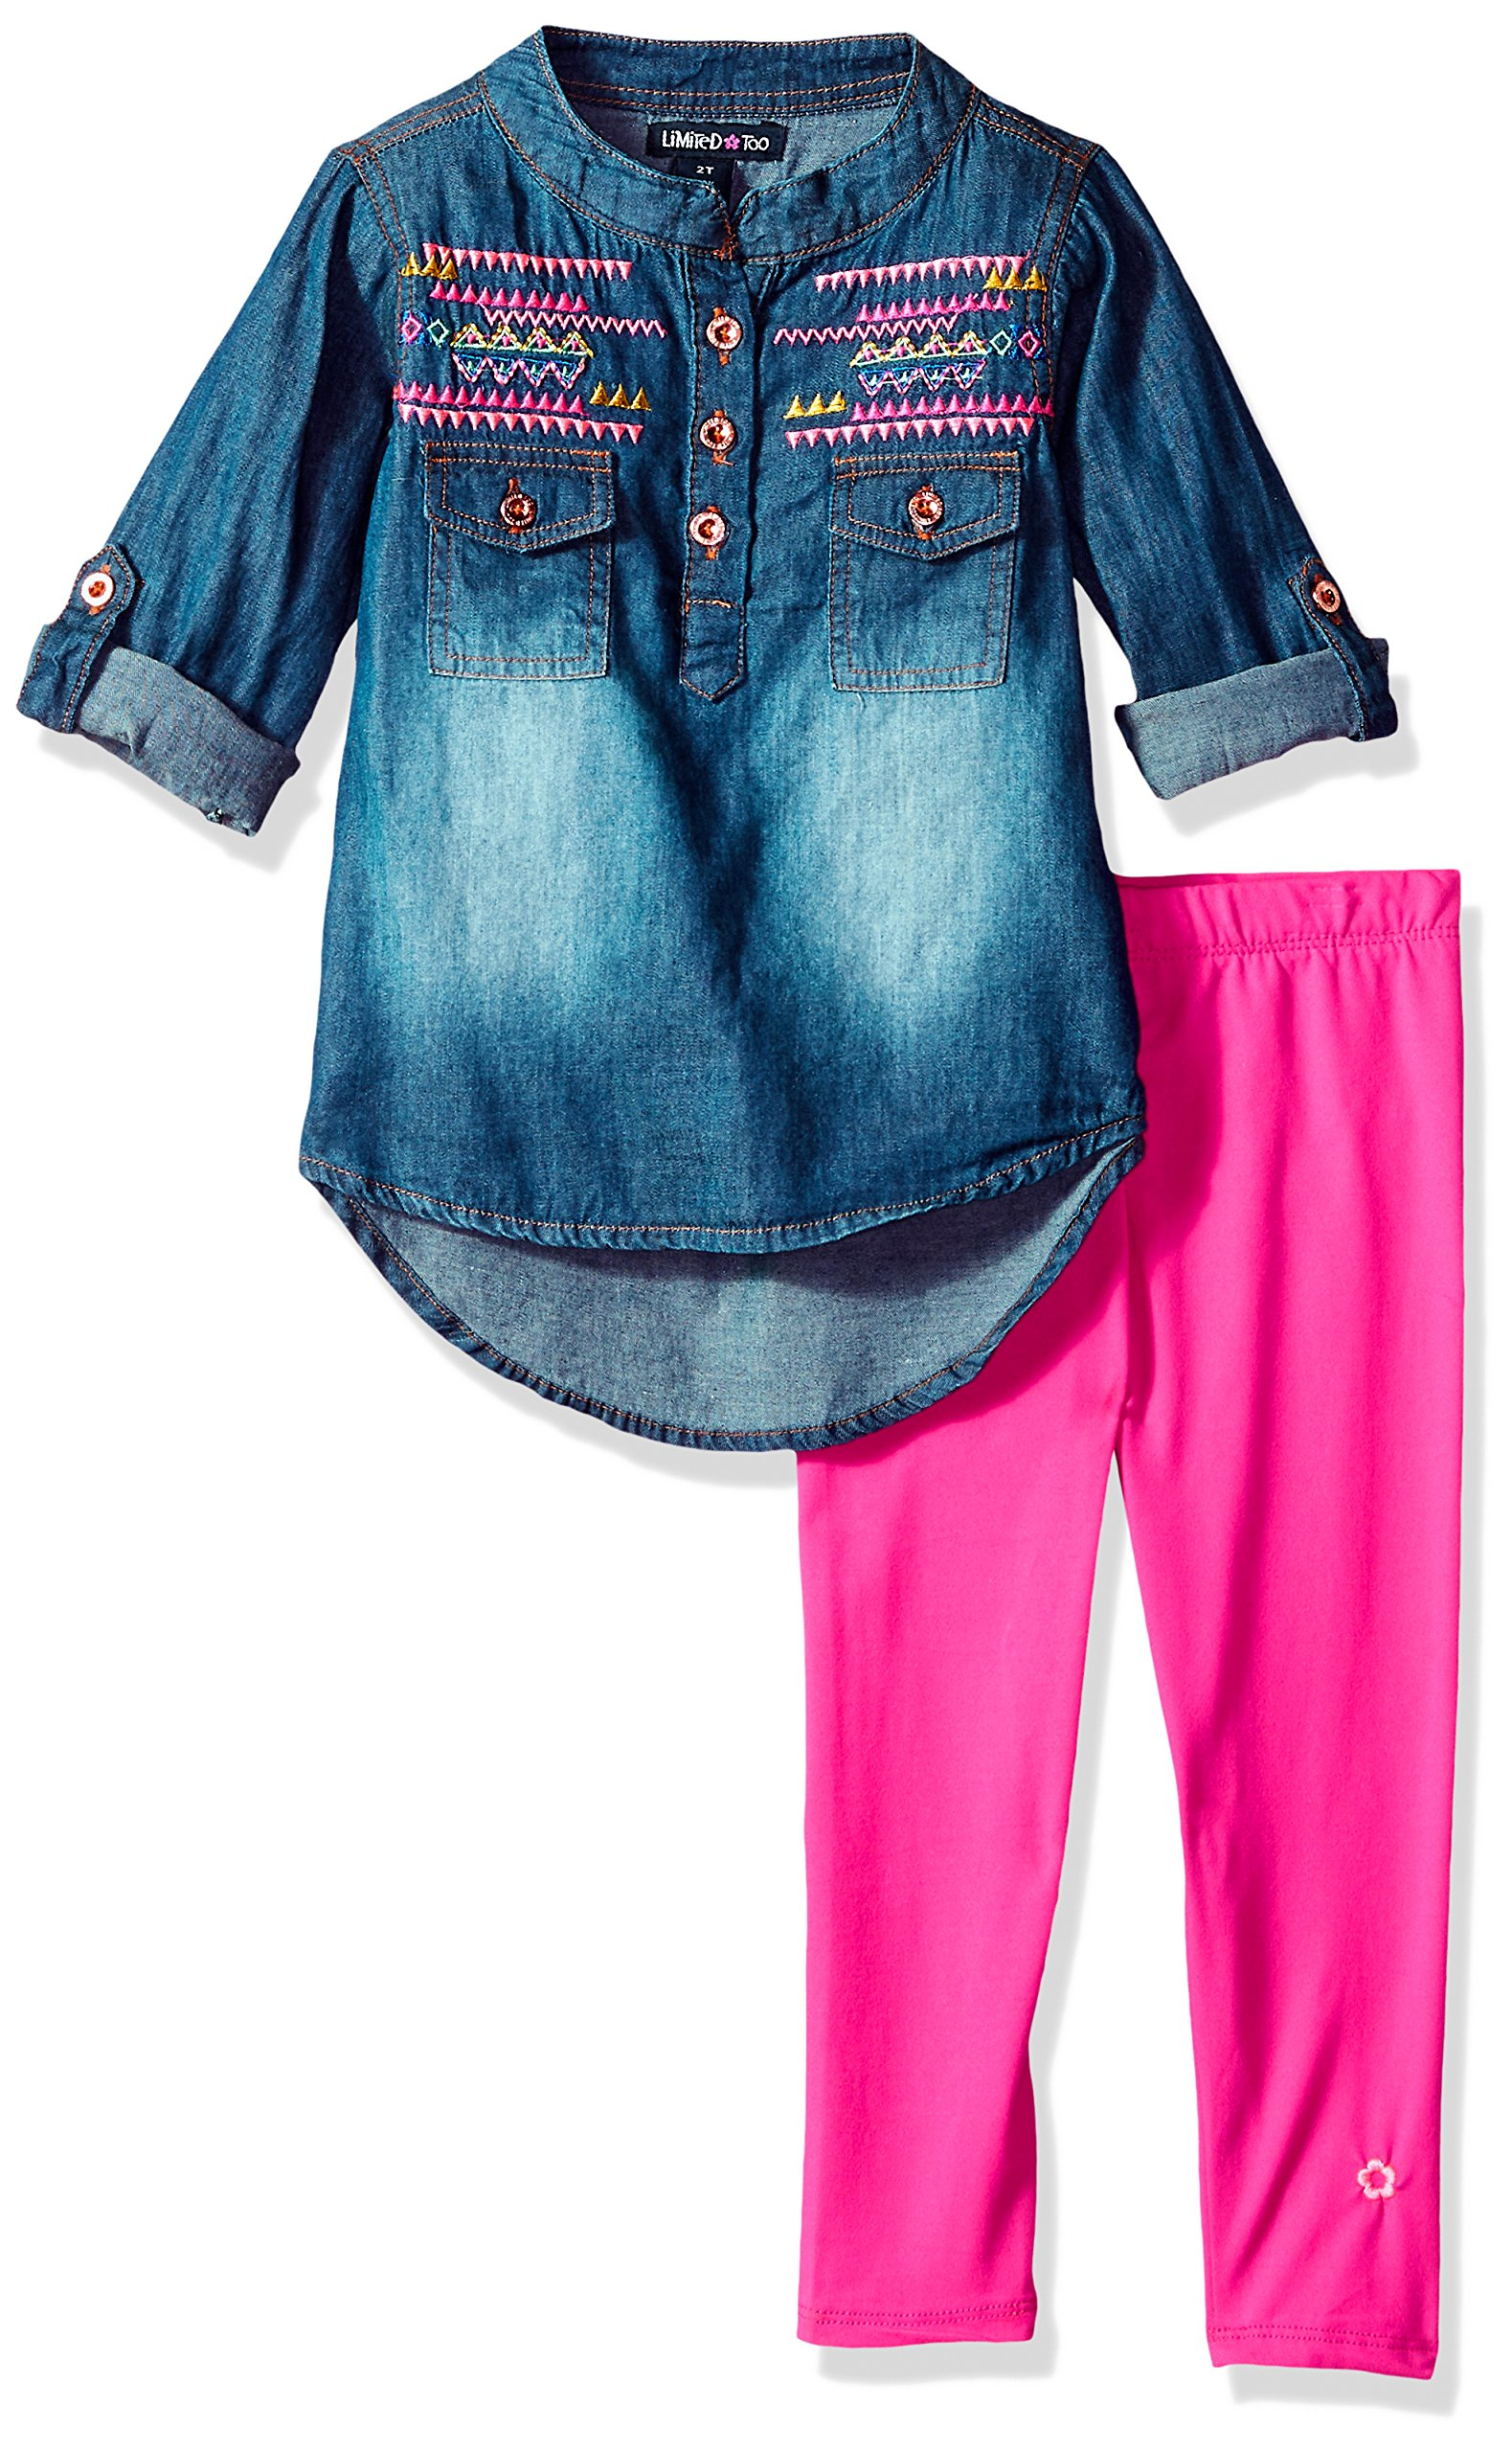 Limited Too Toddler Girls' Fashion Top and Legging Set, Cargo Pocket Top Neon Hot Pink, 3T